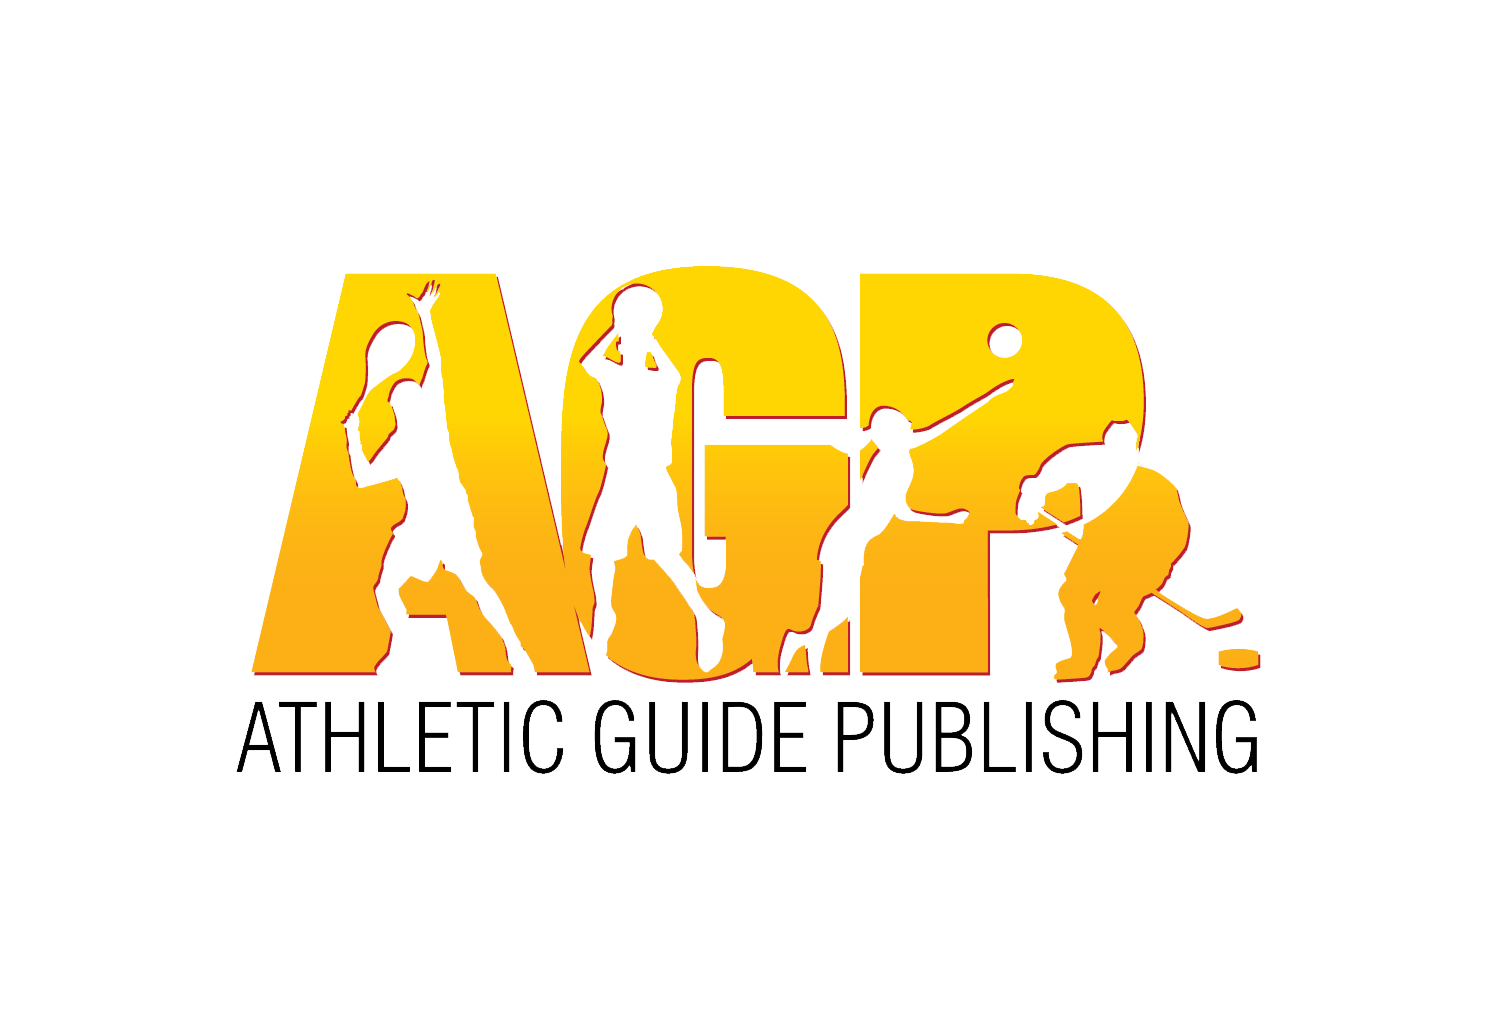 Athletic Guide Publishing